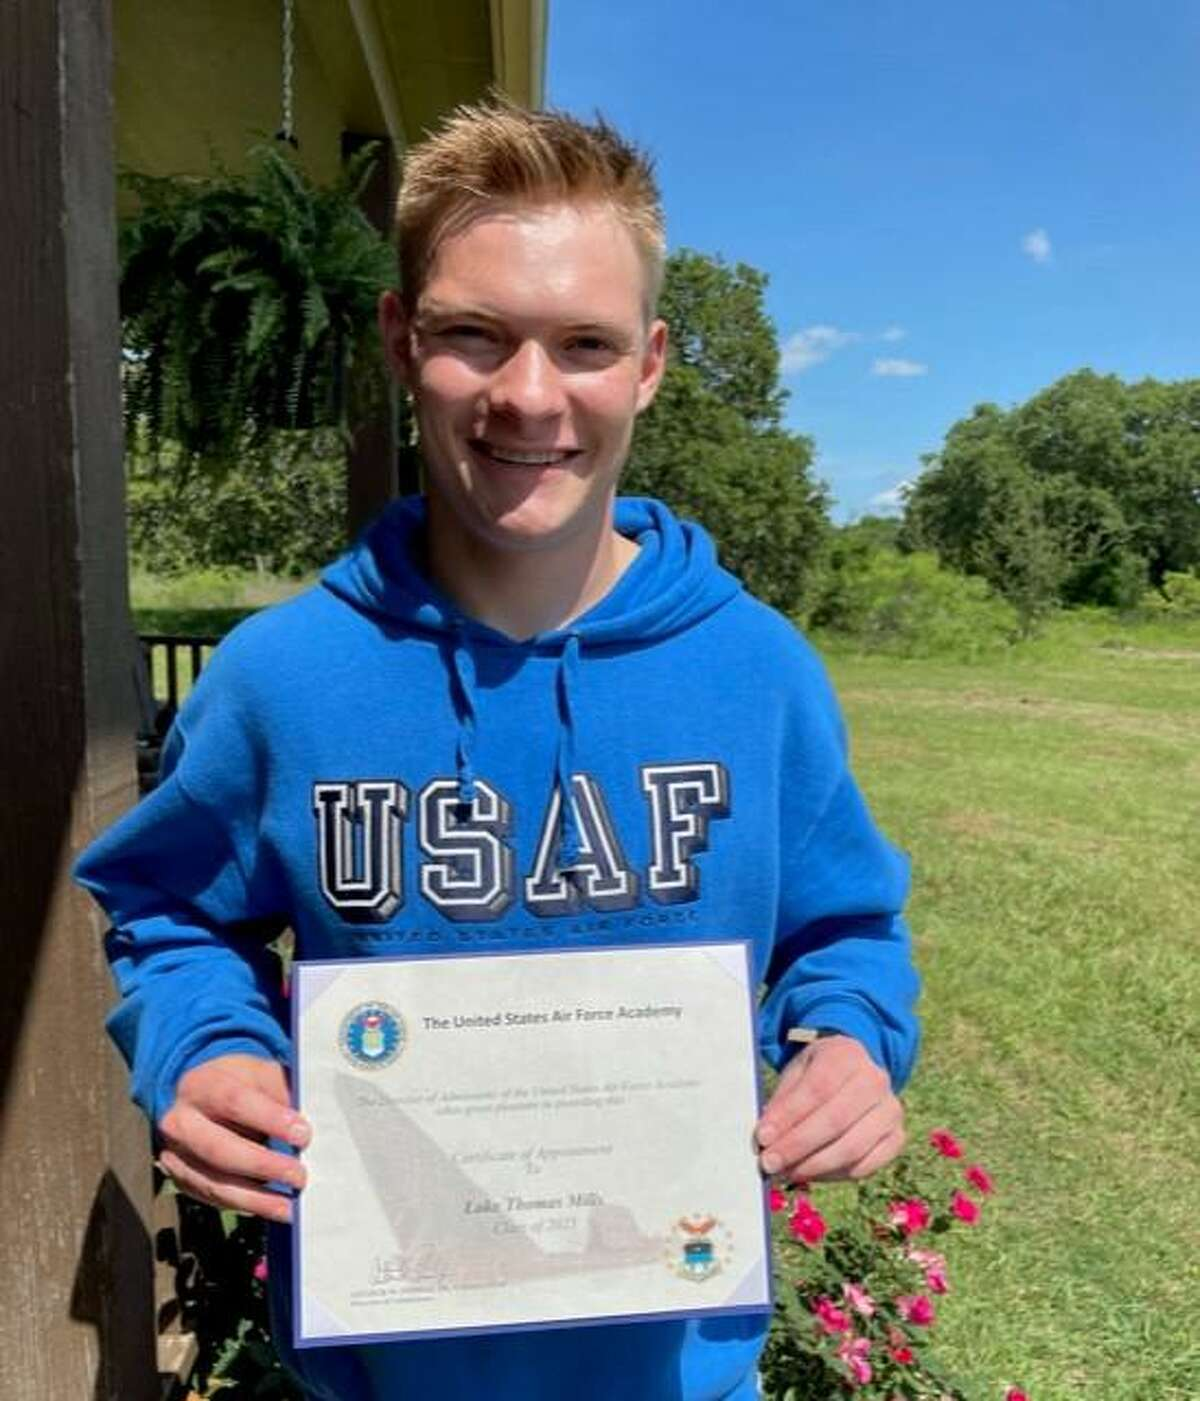 Lake Mills, a homeschooled Bastrop County teen, is headed to the Air Force Academy. Mills, 18, shown with his Certificate of Appointment from the United States Air Force, received his nomination from U.S. Rep. Michael McCaul. Approximately 10,000 applicants applied nationwide and 1,200 were offered appointments into the academy.